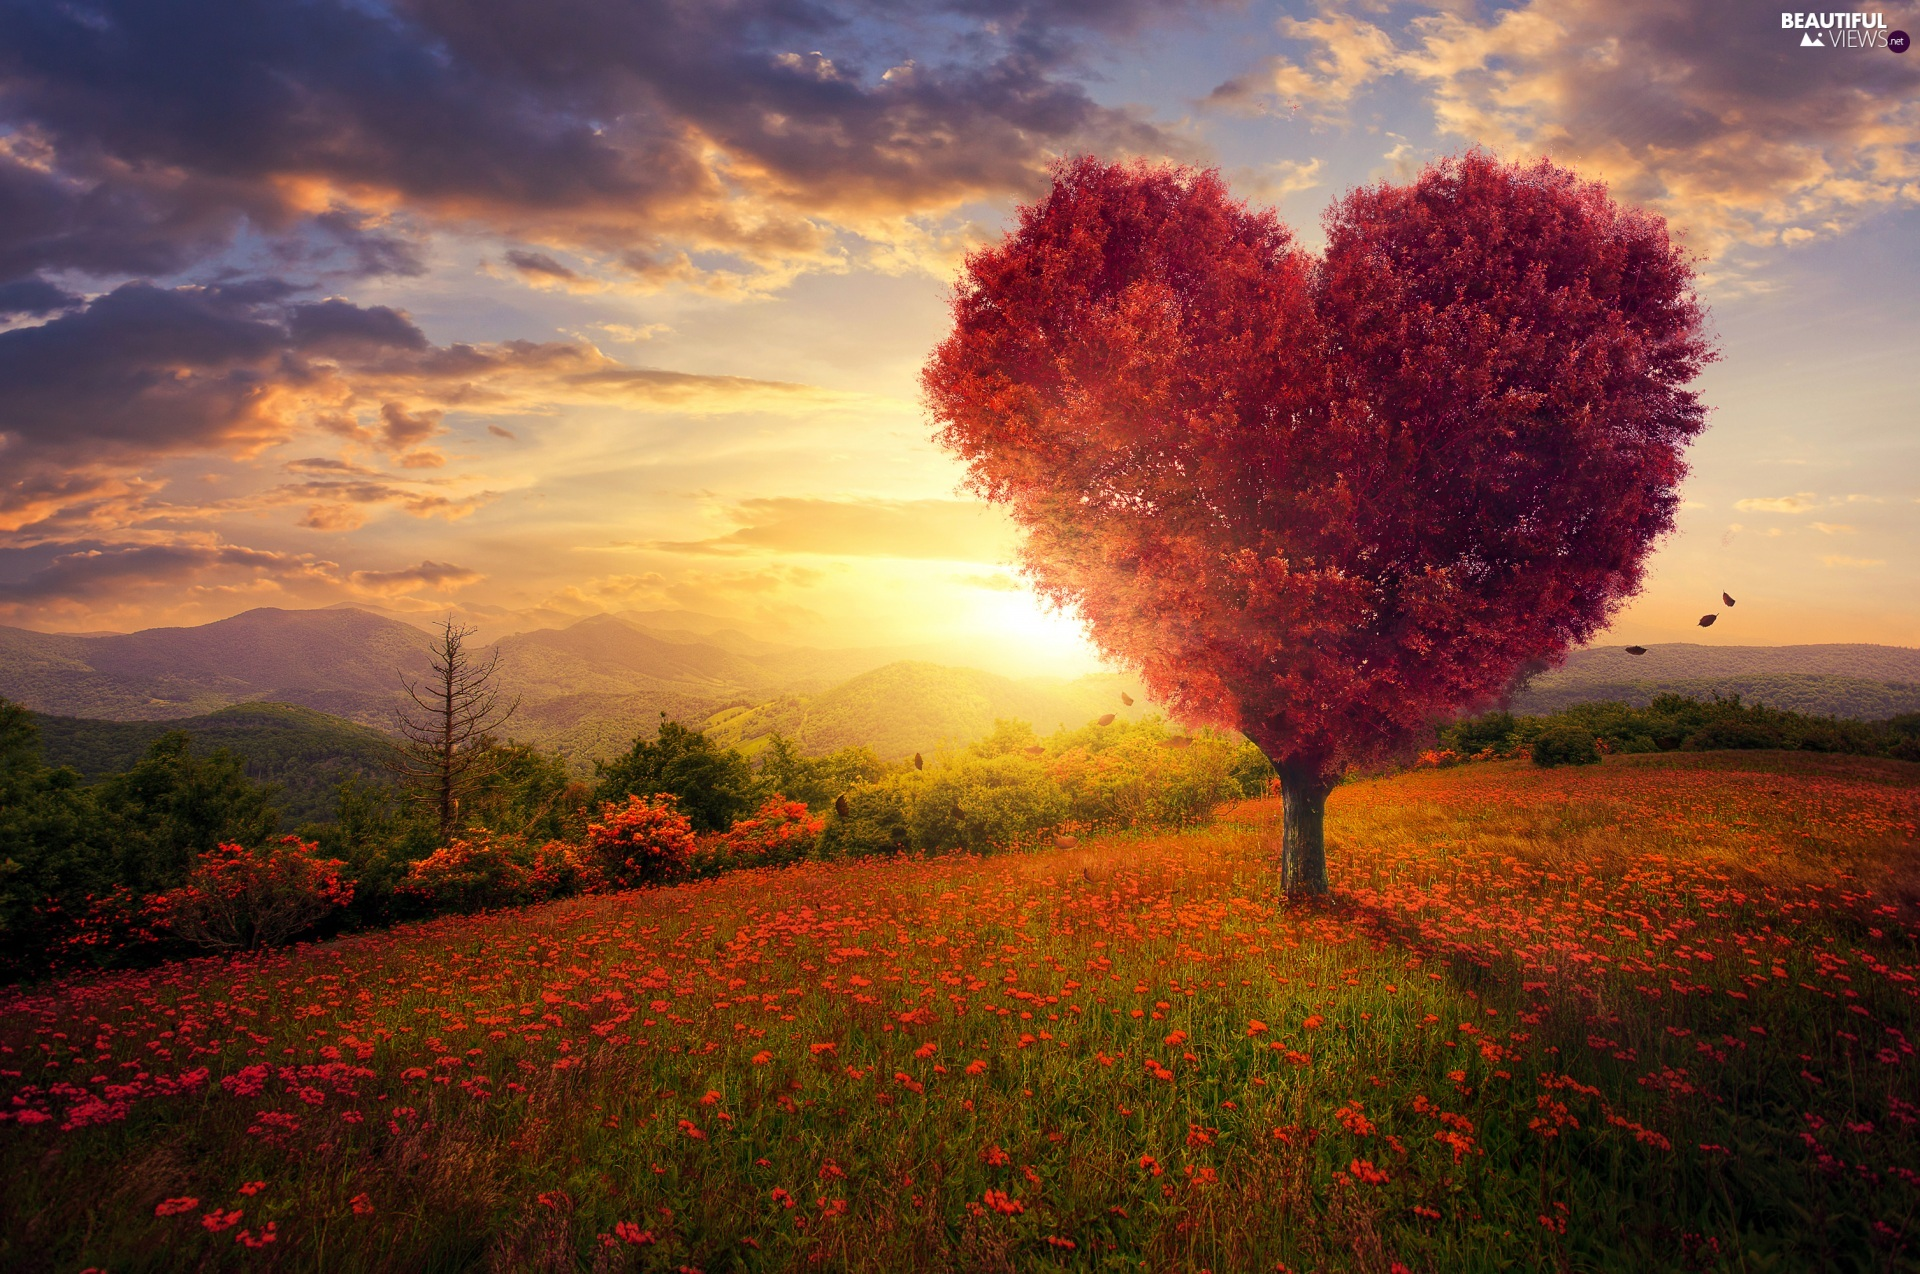 trees, viewes, graphics, Heart, clouds, Mountains, Meadow, Sunrise